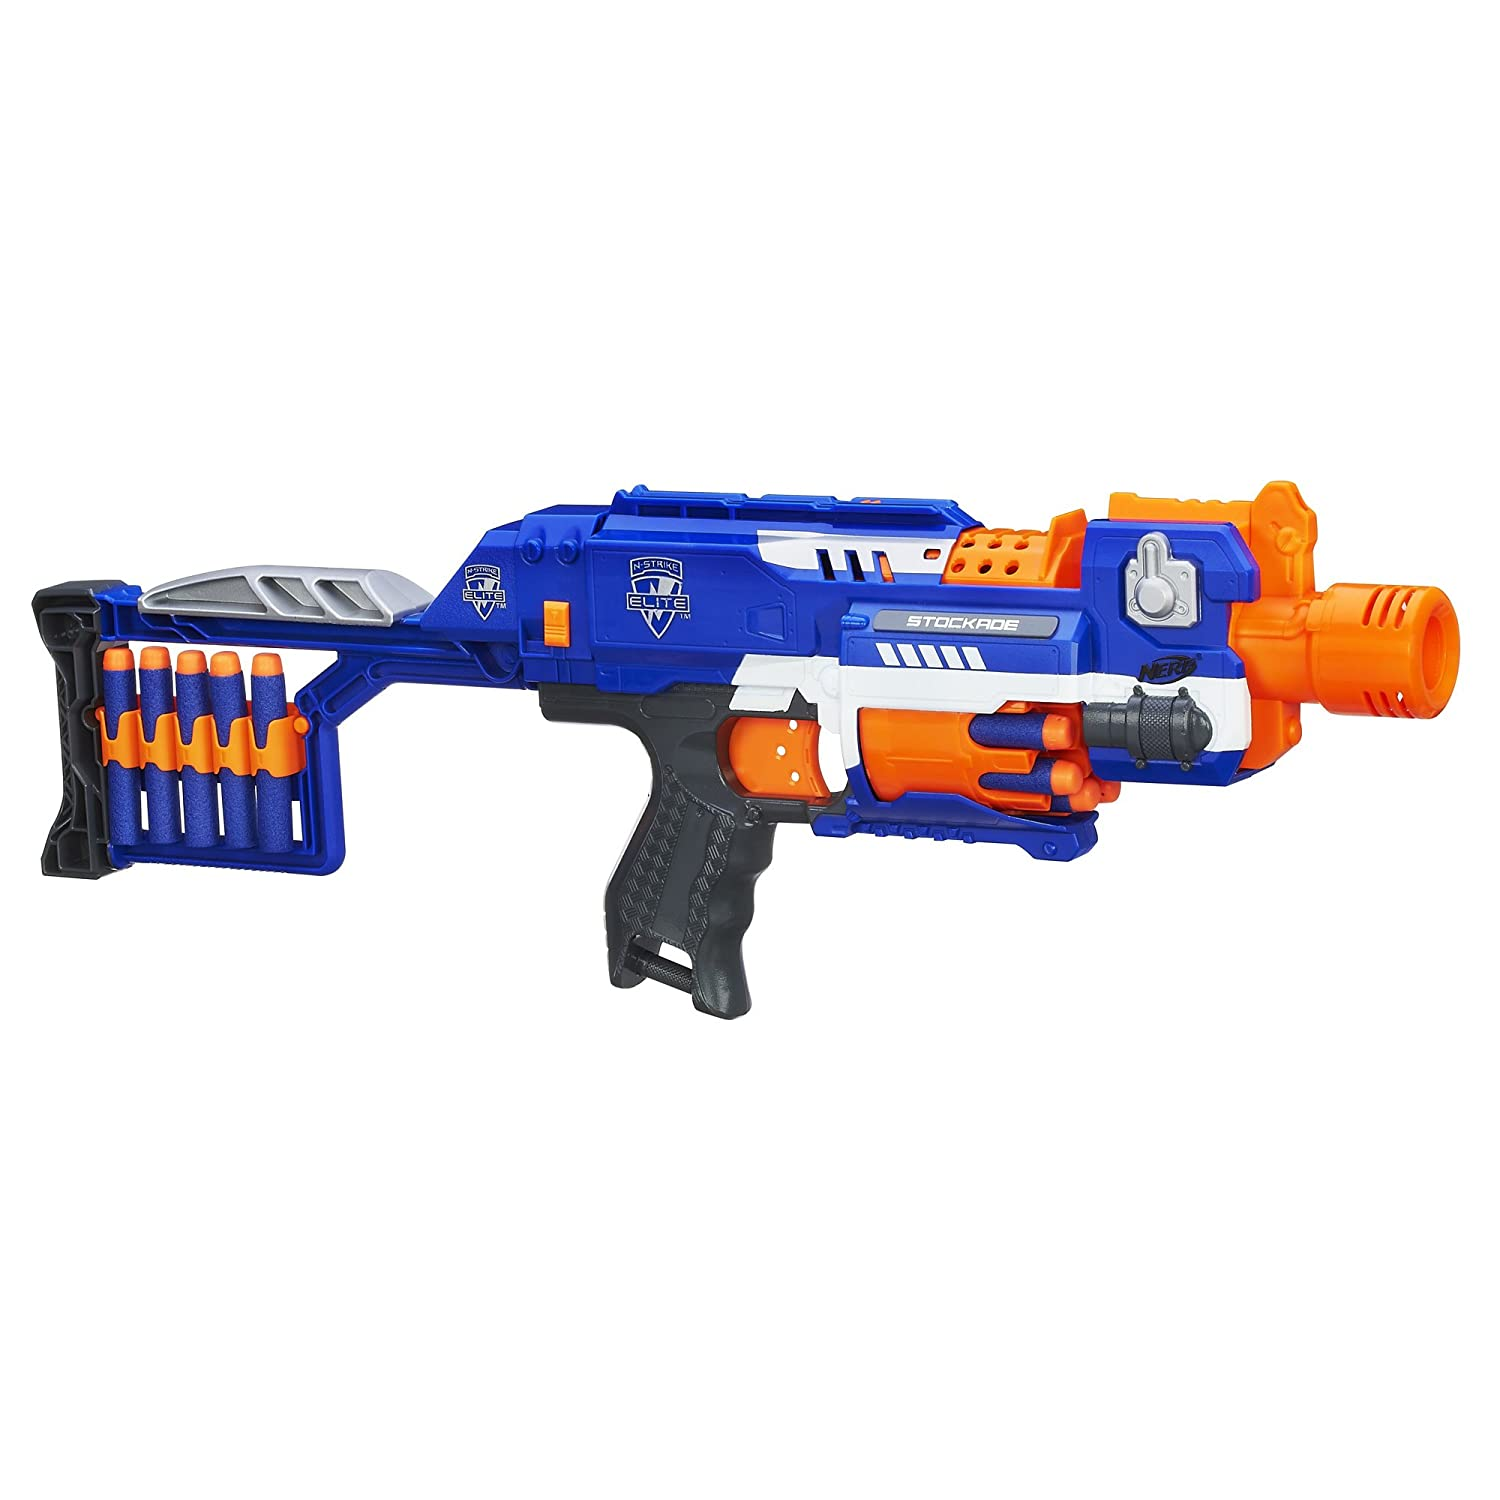 Sottocosto: Nerf N-Strike Elite XD Stockade per 22,56€ [amazon.de]